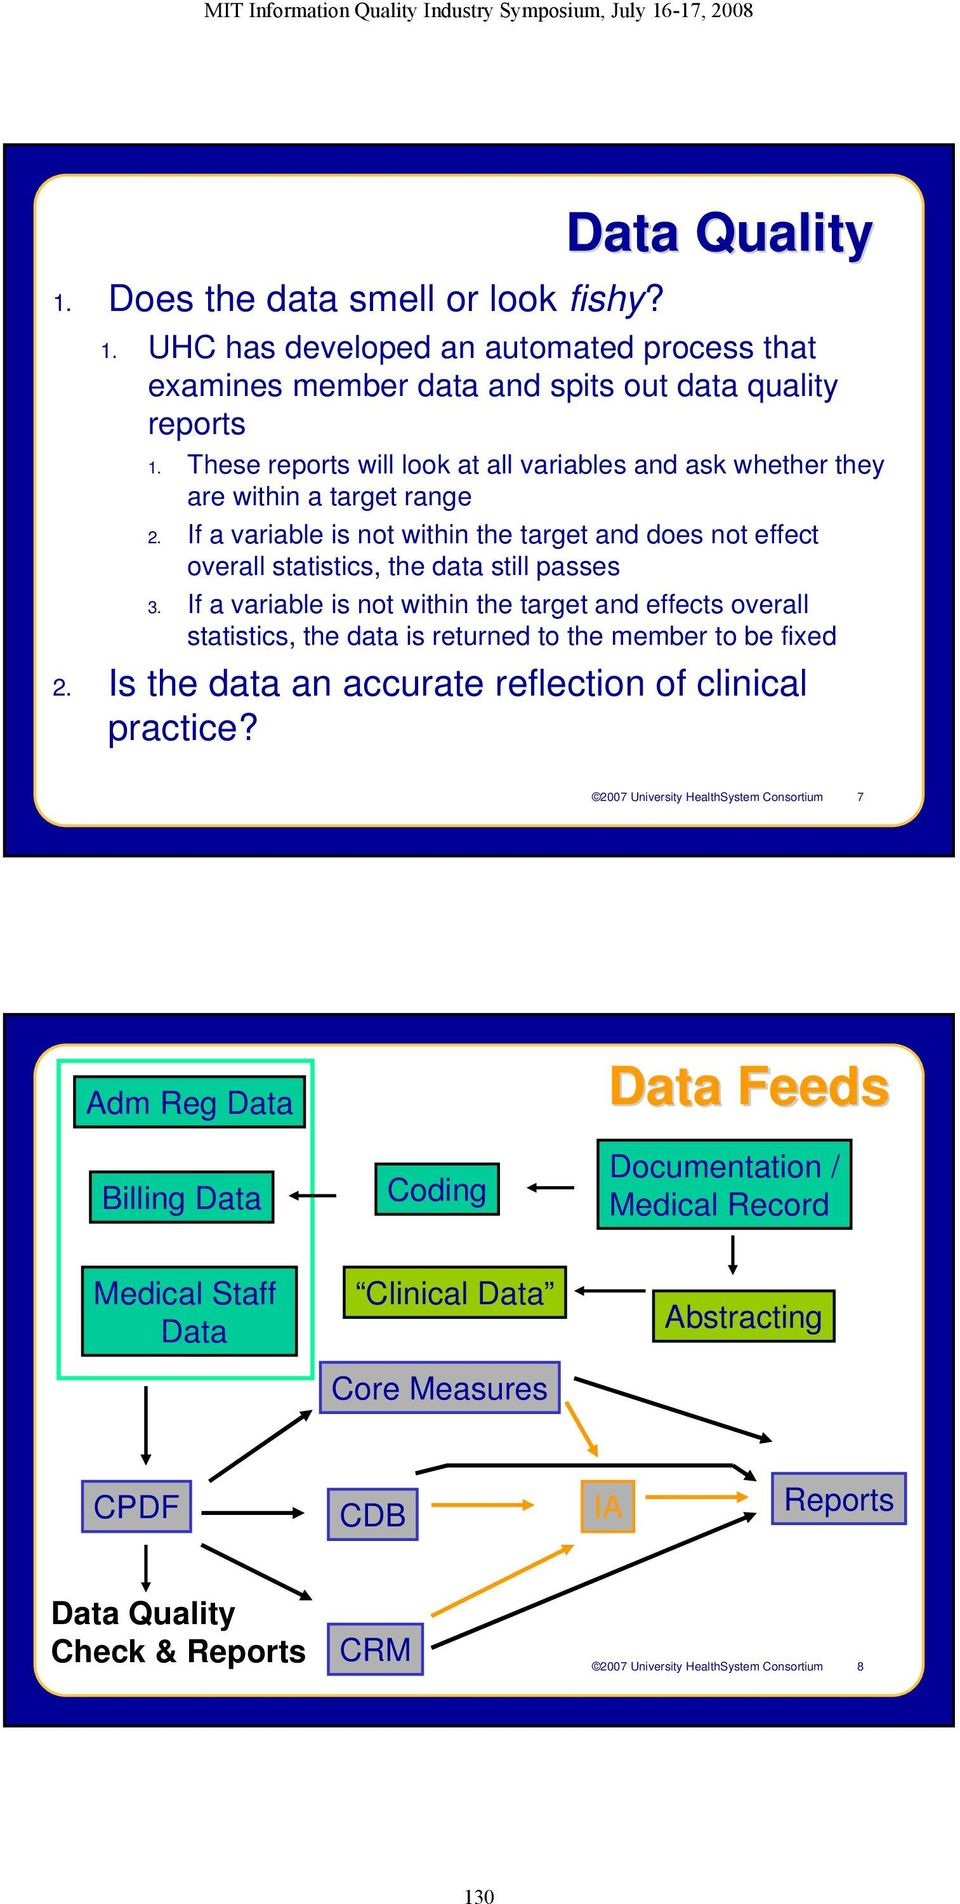 If a variable is not within the target and effects overall statistics, the data is returned to the member to be fixed 2. Is the data an accurate reflection of clinical practice?